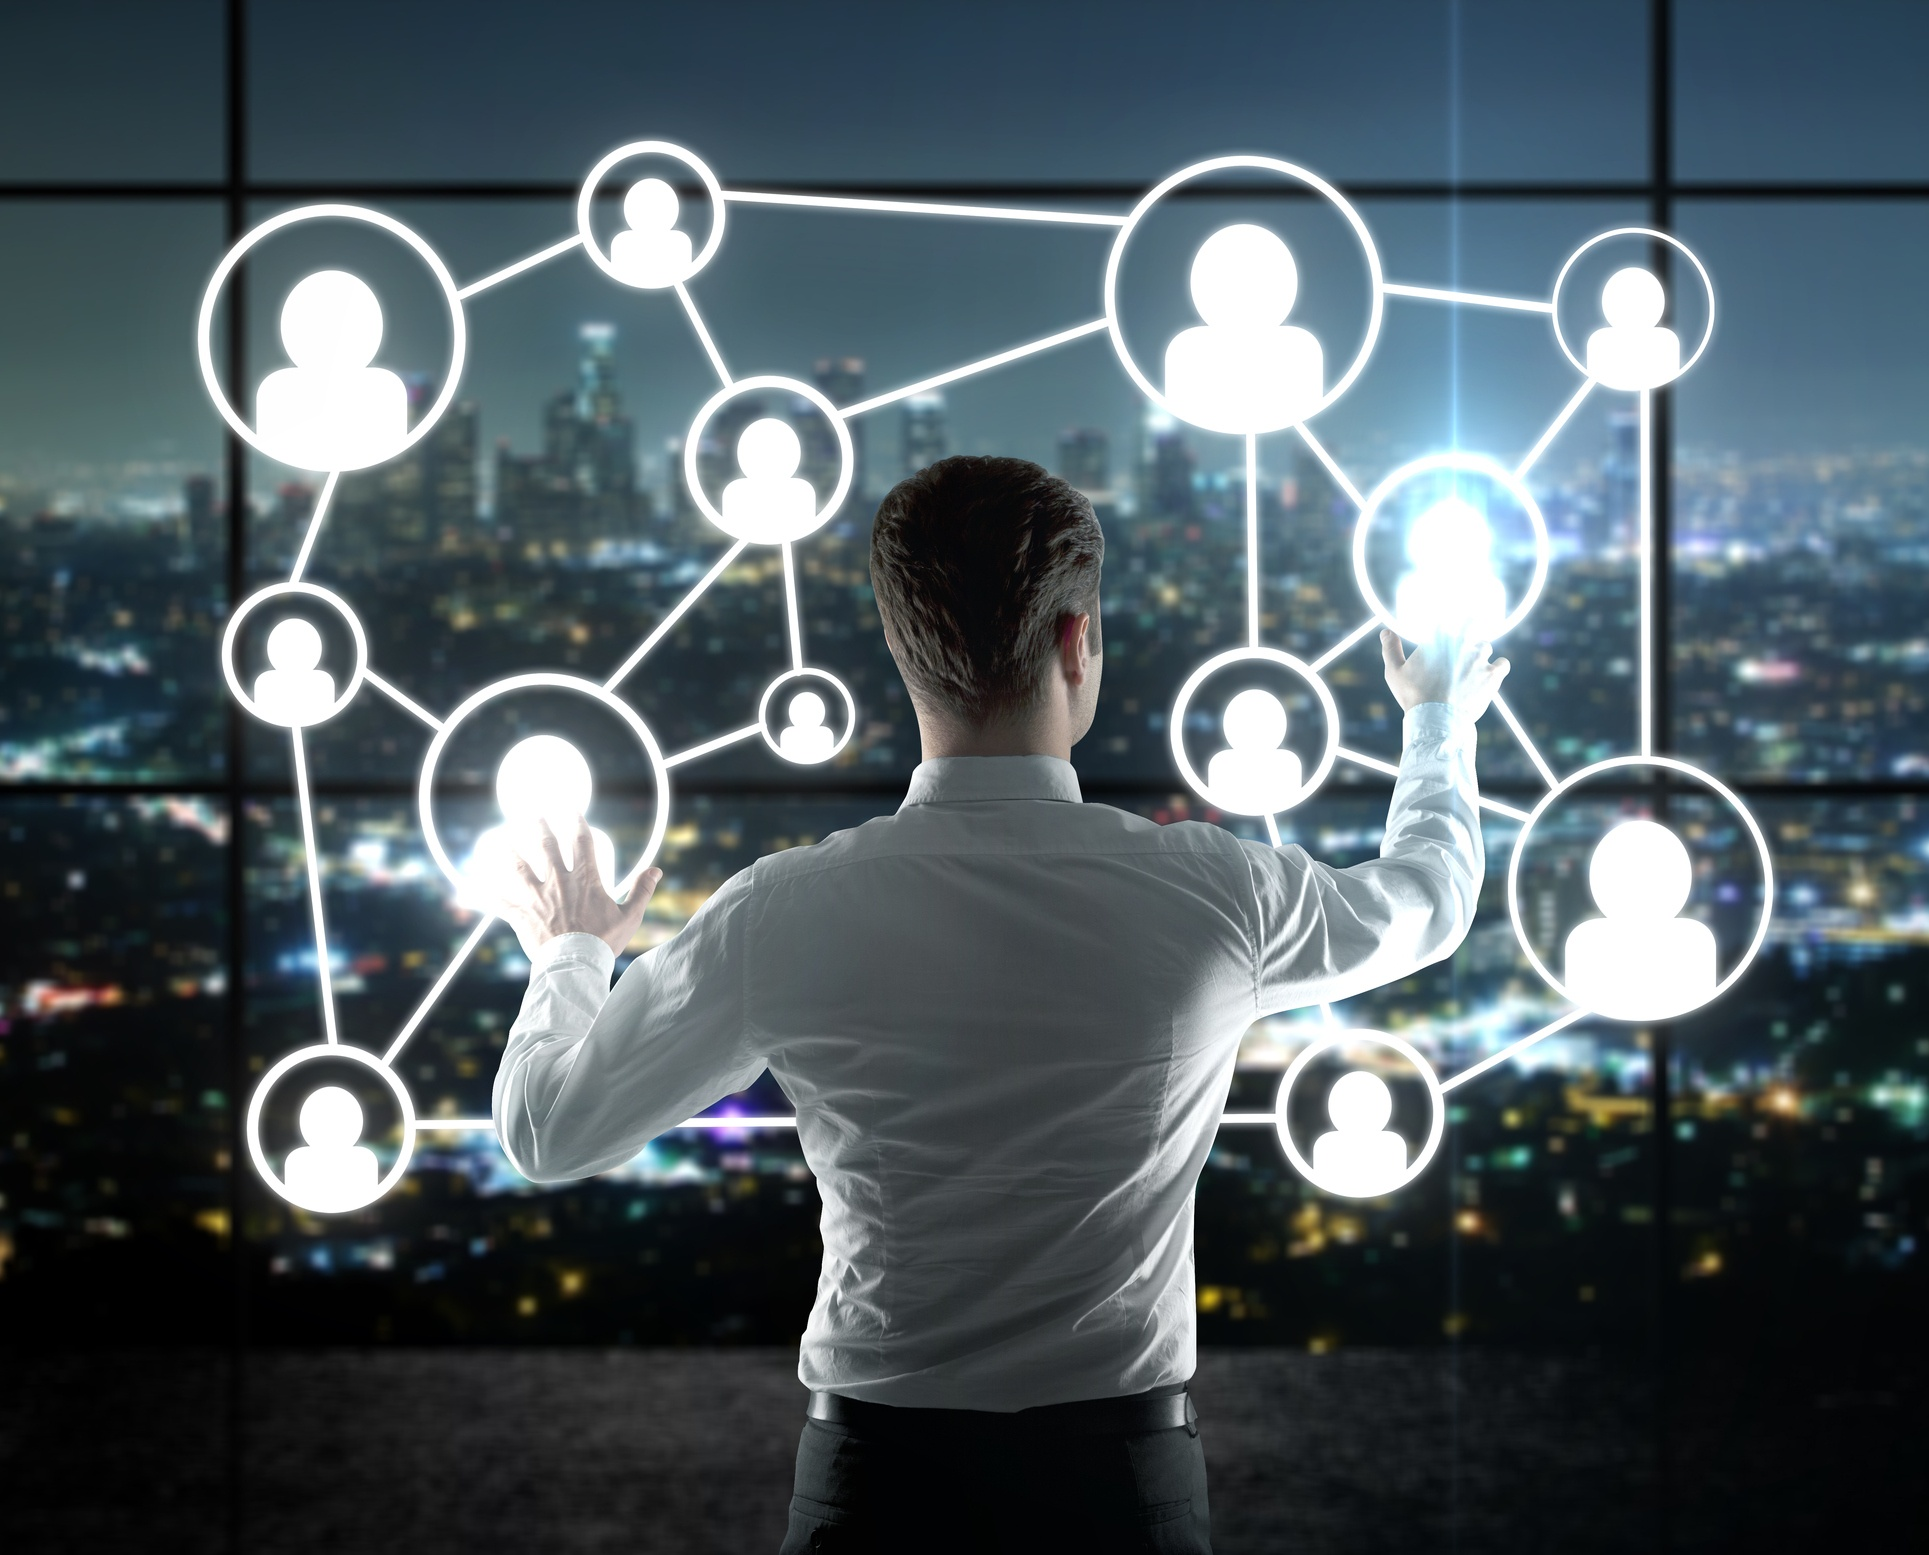 5 Things to Consider Before Creating a New Social Media Account